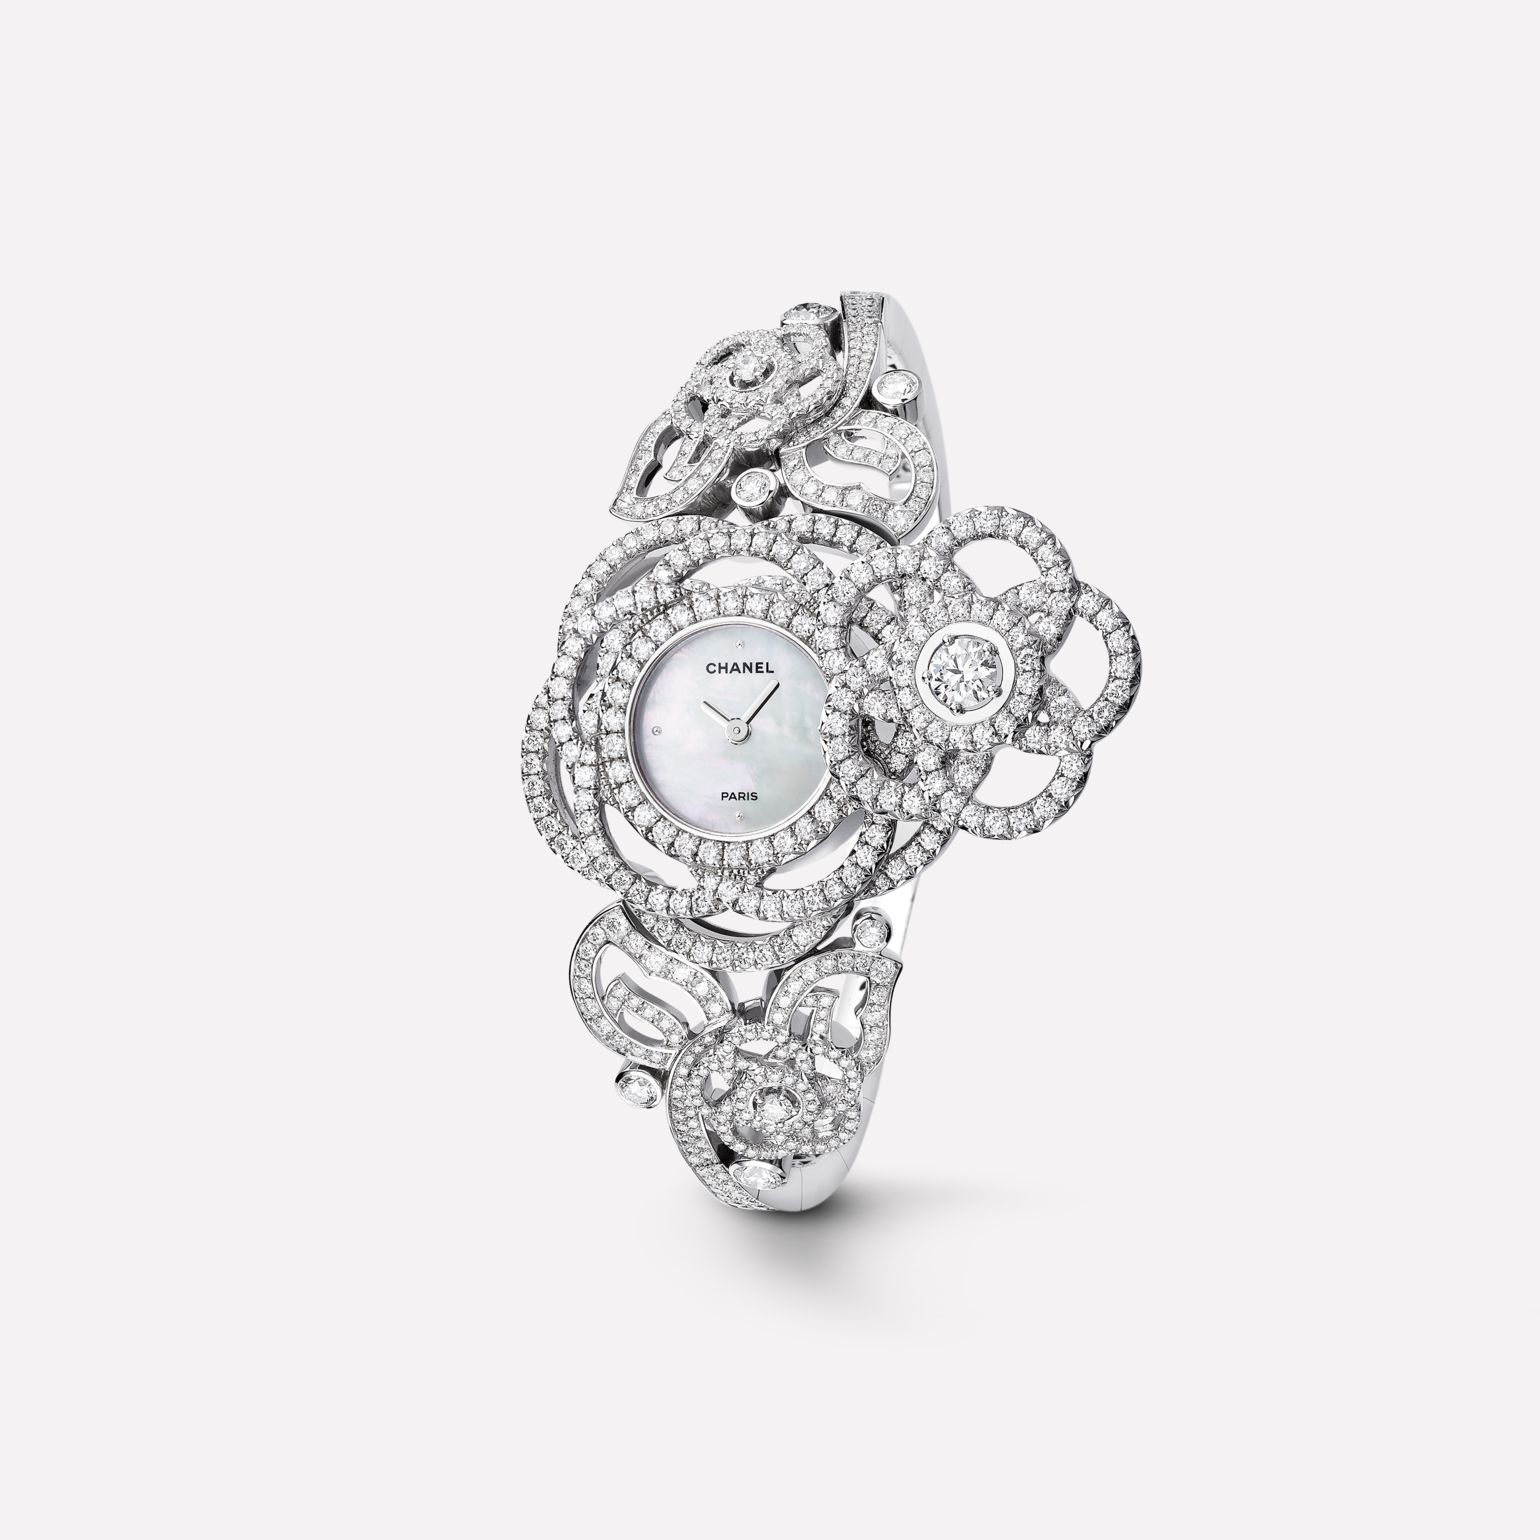 Montre Joaillerie Camélia Montre à secret motif camélia brodé grand modèle, en or blanc 18 carats, diamants et bracelet diamants